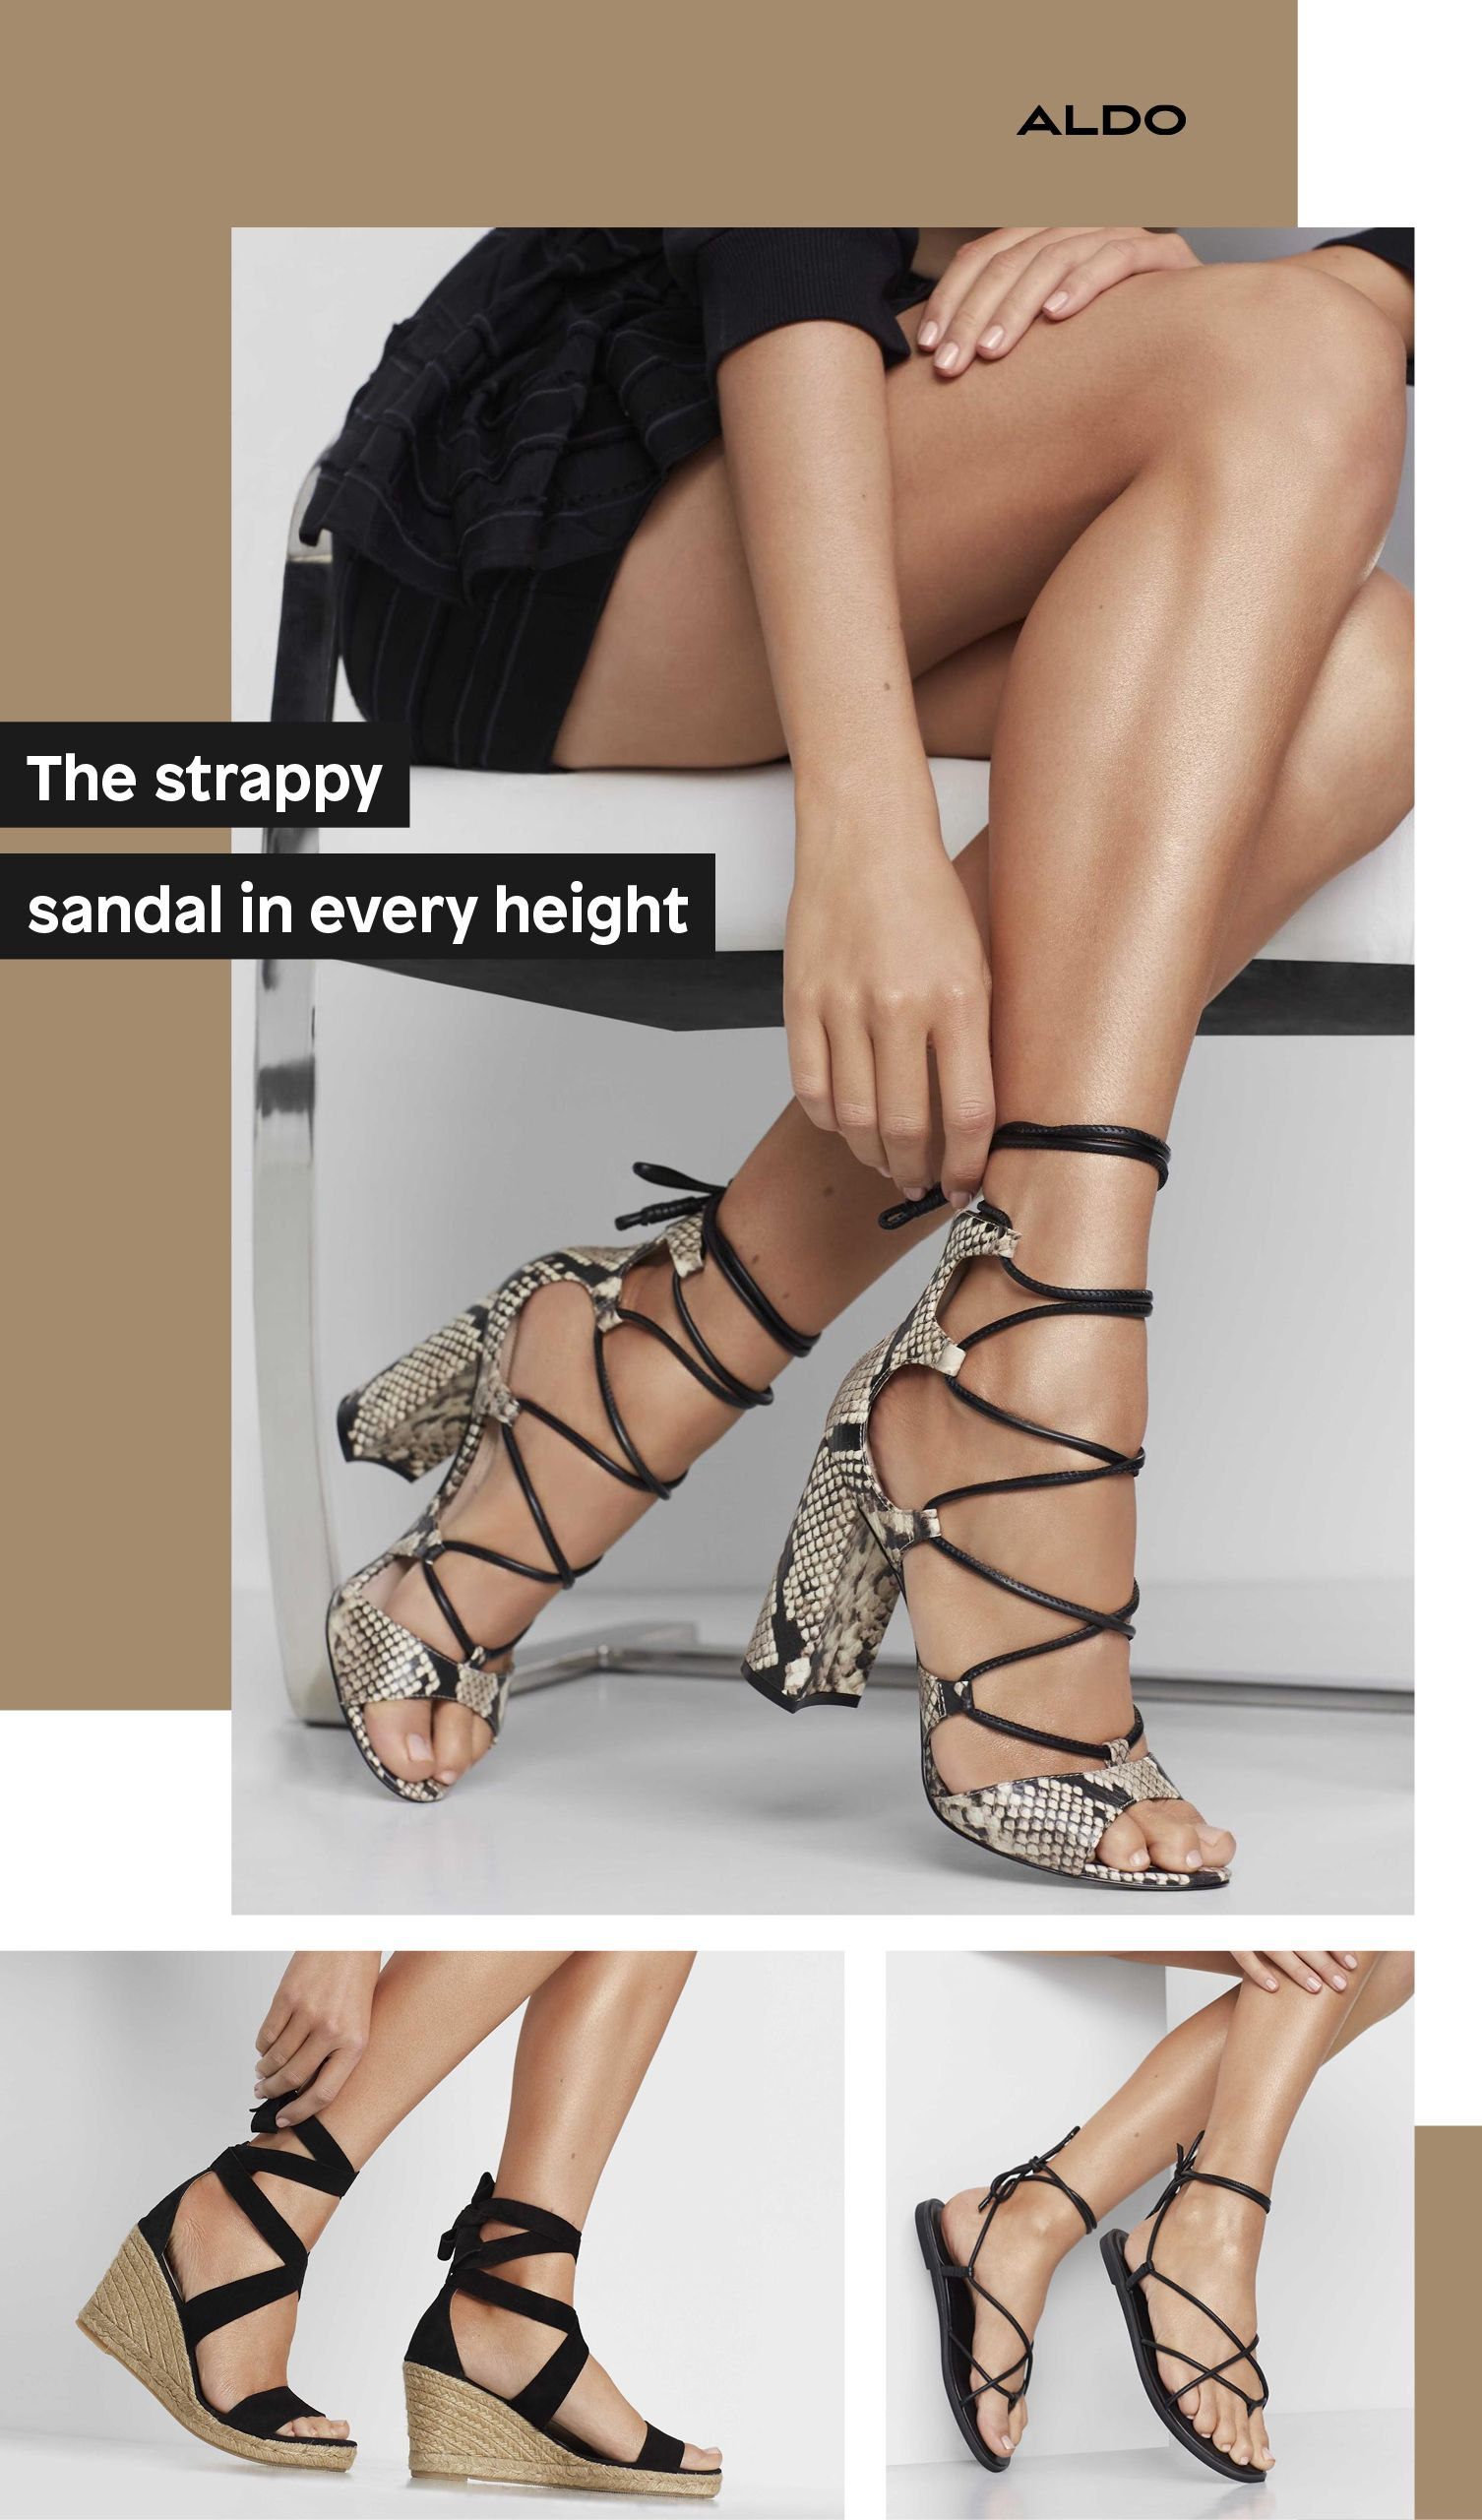 Lace-up sandals from Aldo Shoes new